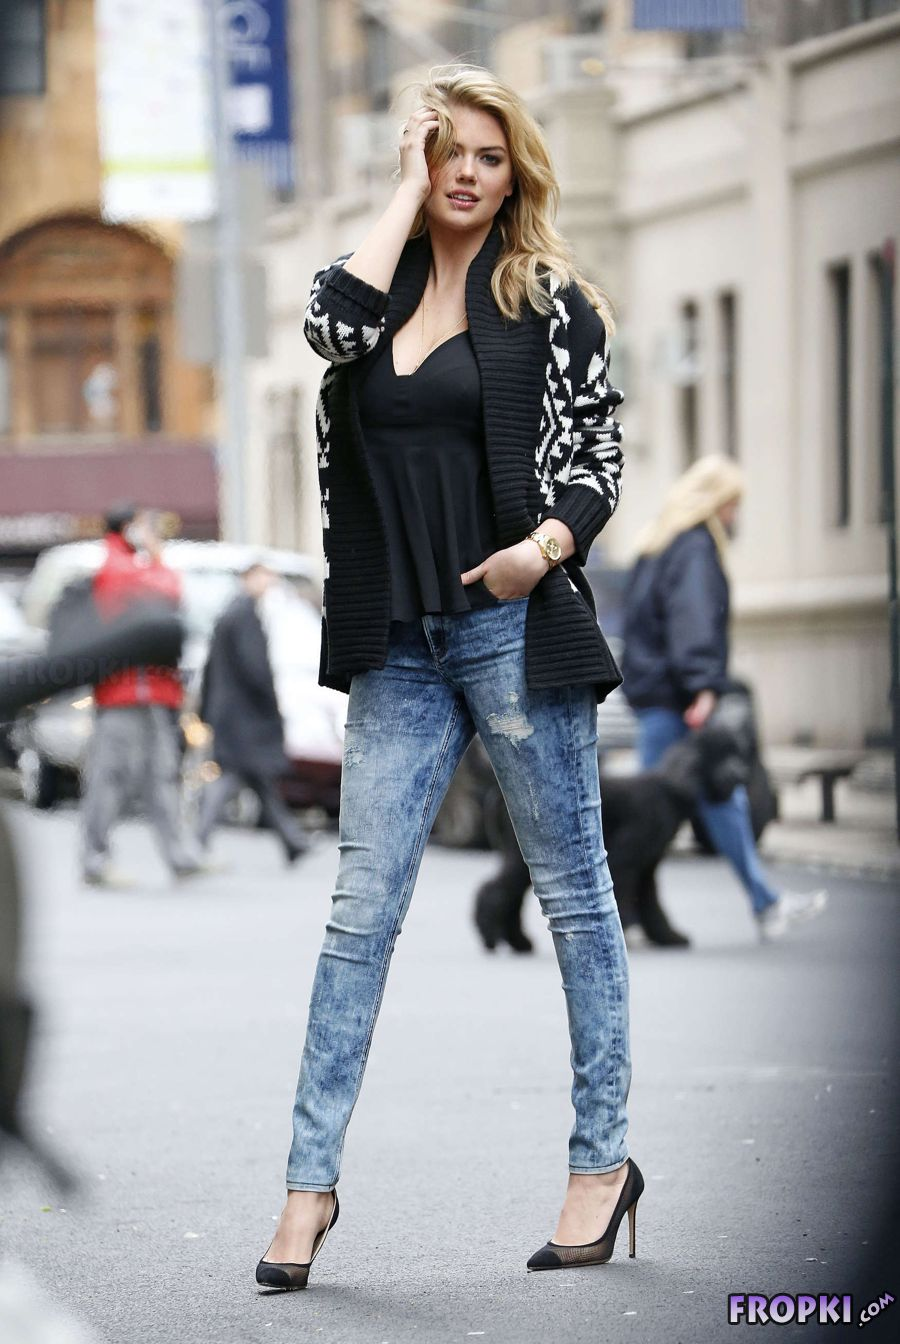 Kate Upton - Poses in Jeans and Black Top in NYC